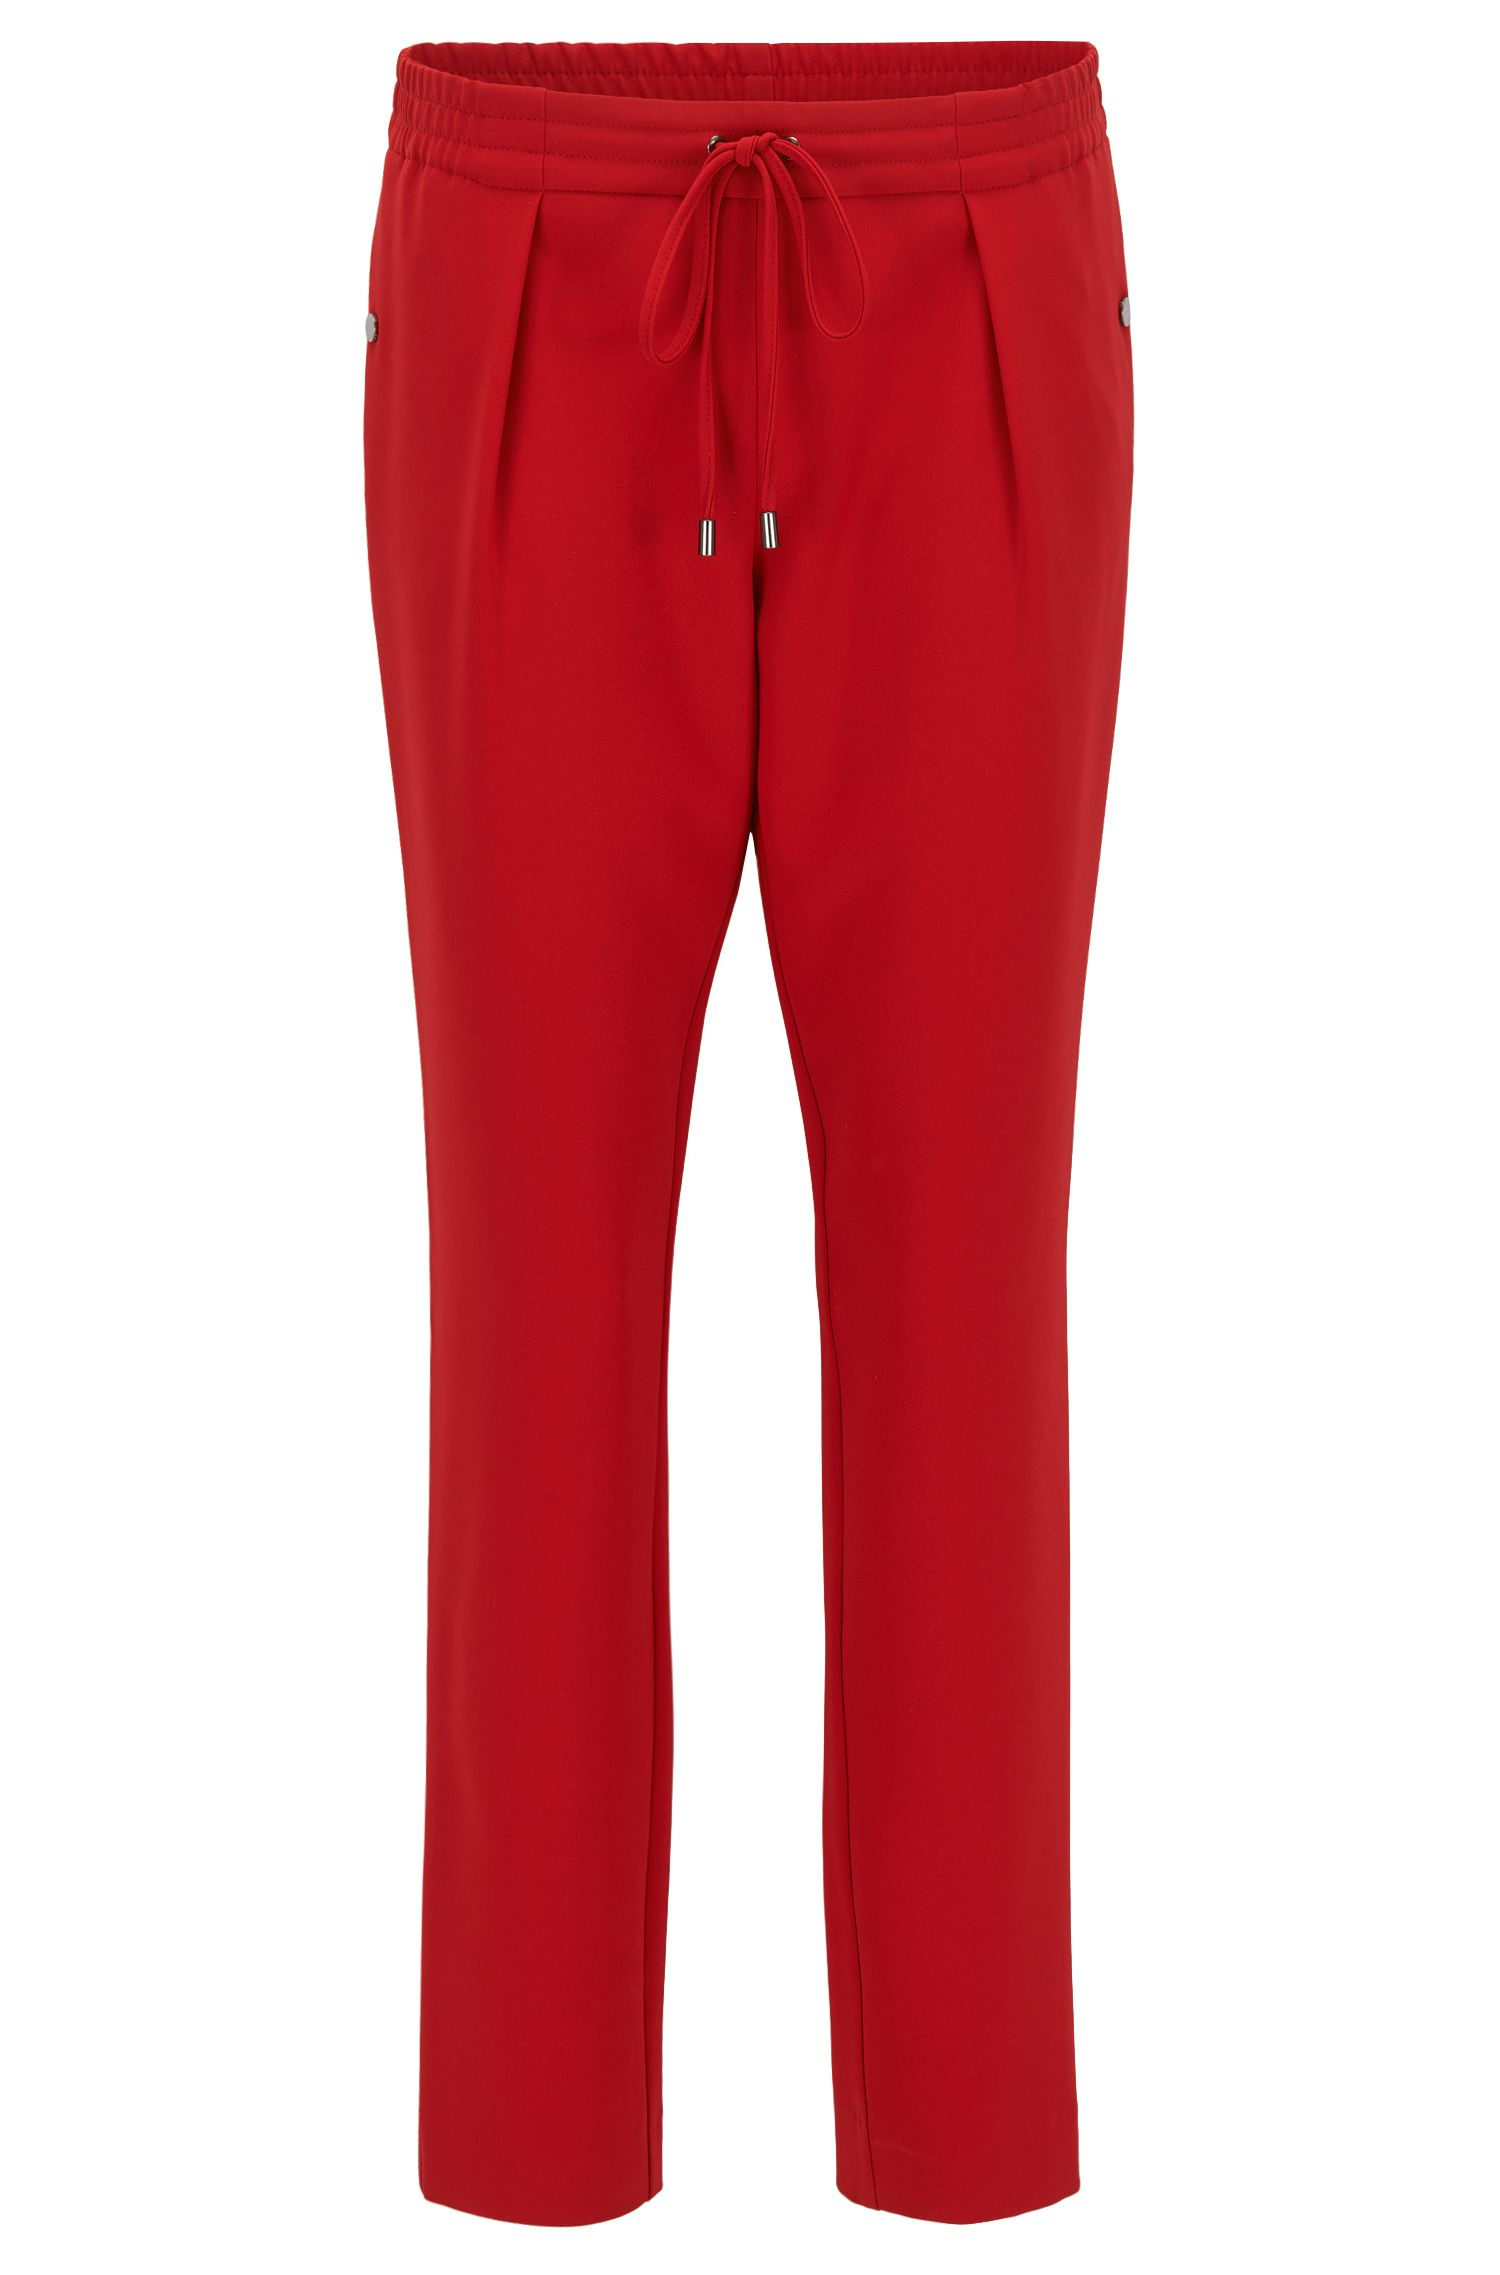 Relaxed-fit drawstring trousers with a tapered leg